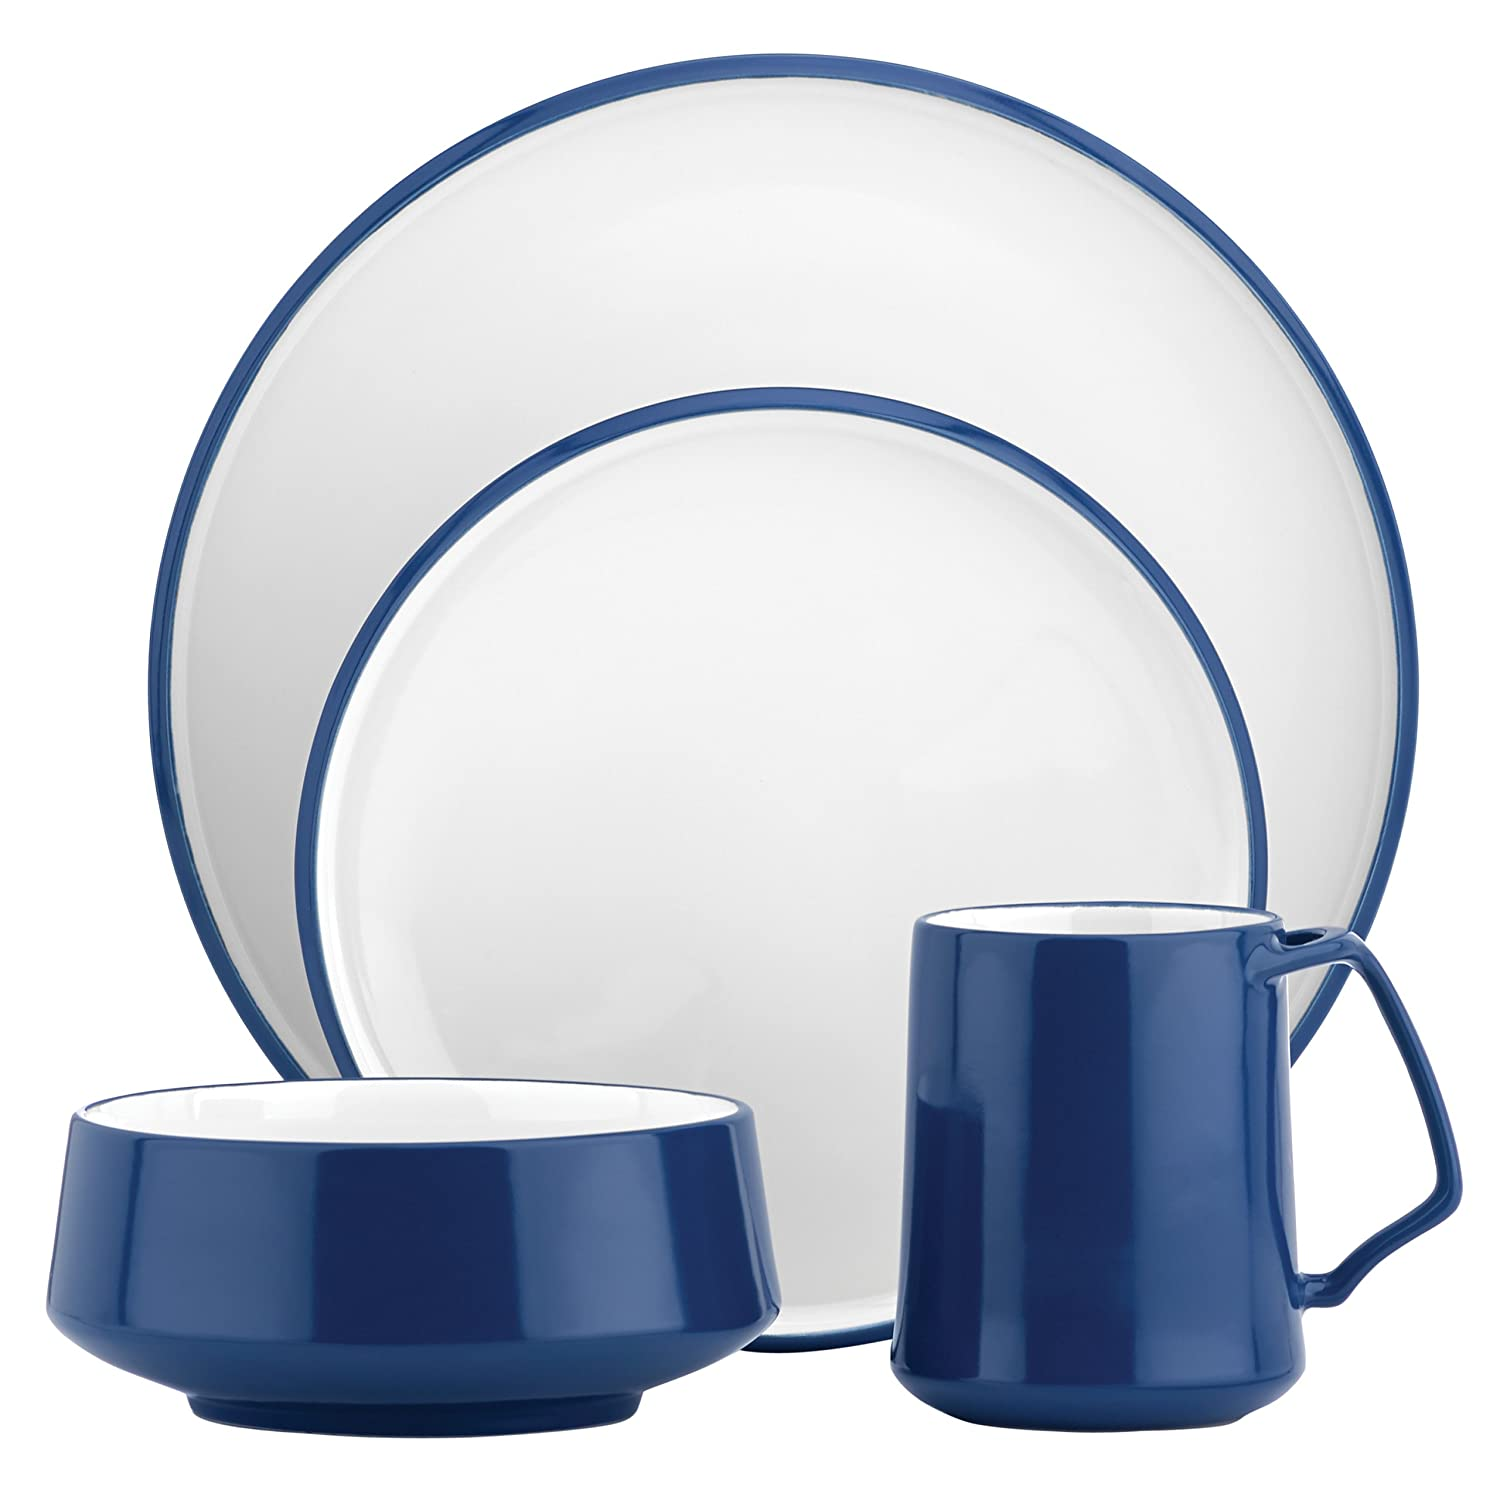 Amazon.com DANSK Kobenstyle 4-Piece Place Setting Teal Dinnerware Sets Kitchen \u0026 Dining  sc 1 st  Amazon.com & Amazon.com: DANSK Kobenstyle 4-Piece Place Setting Teal: Dinnerware ...